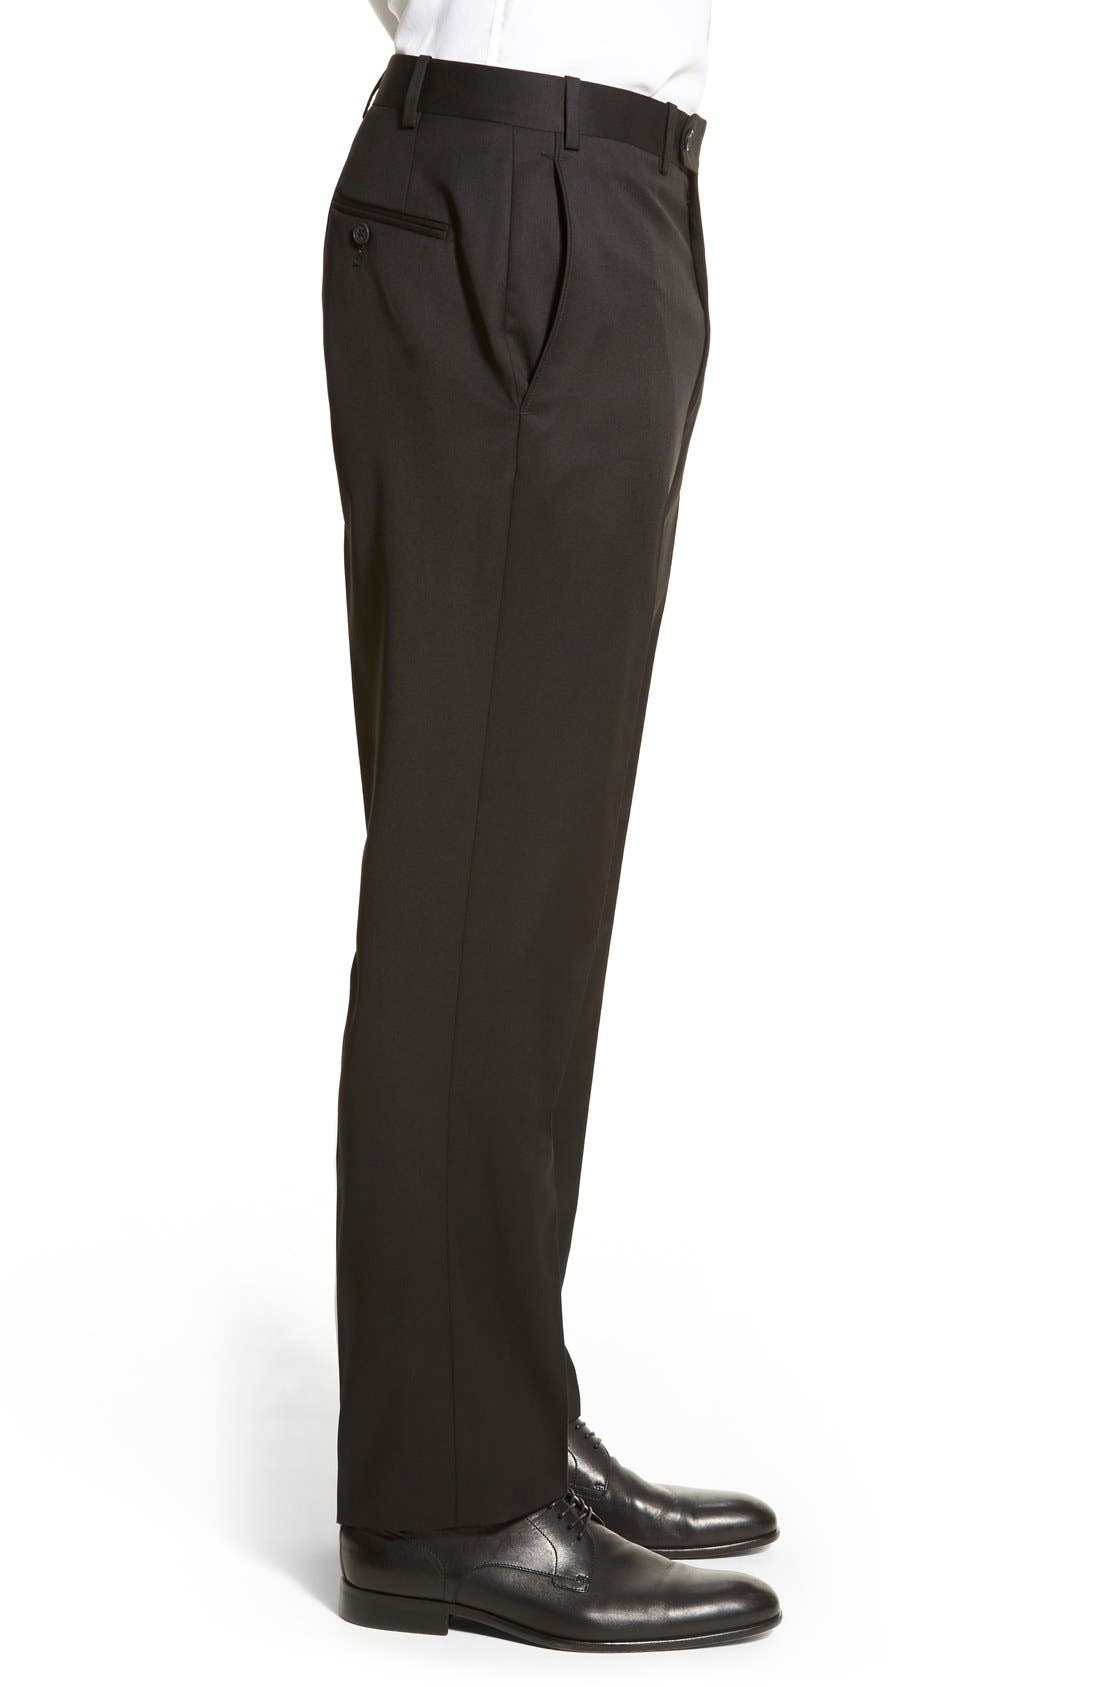 DI MILANO UOMO,                             'Torino' Flat Front Solid Wool Trousers,                             Alternate thumbnail 3, color,                             001